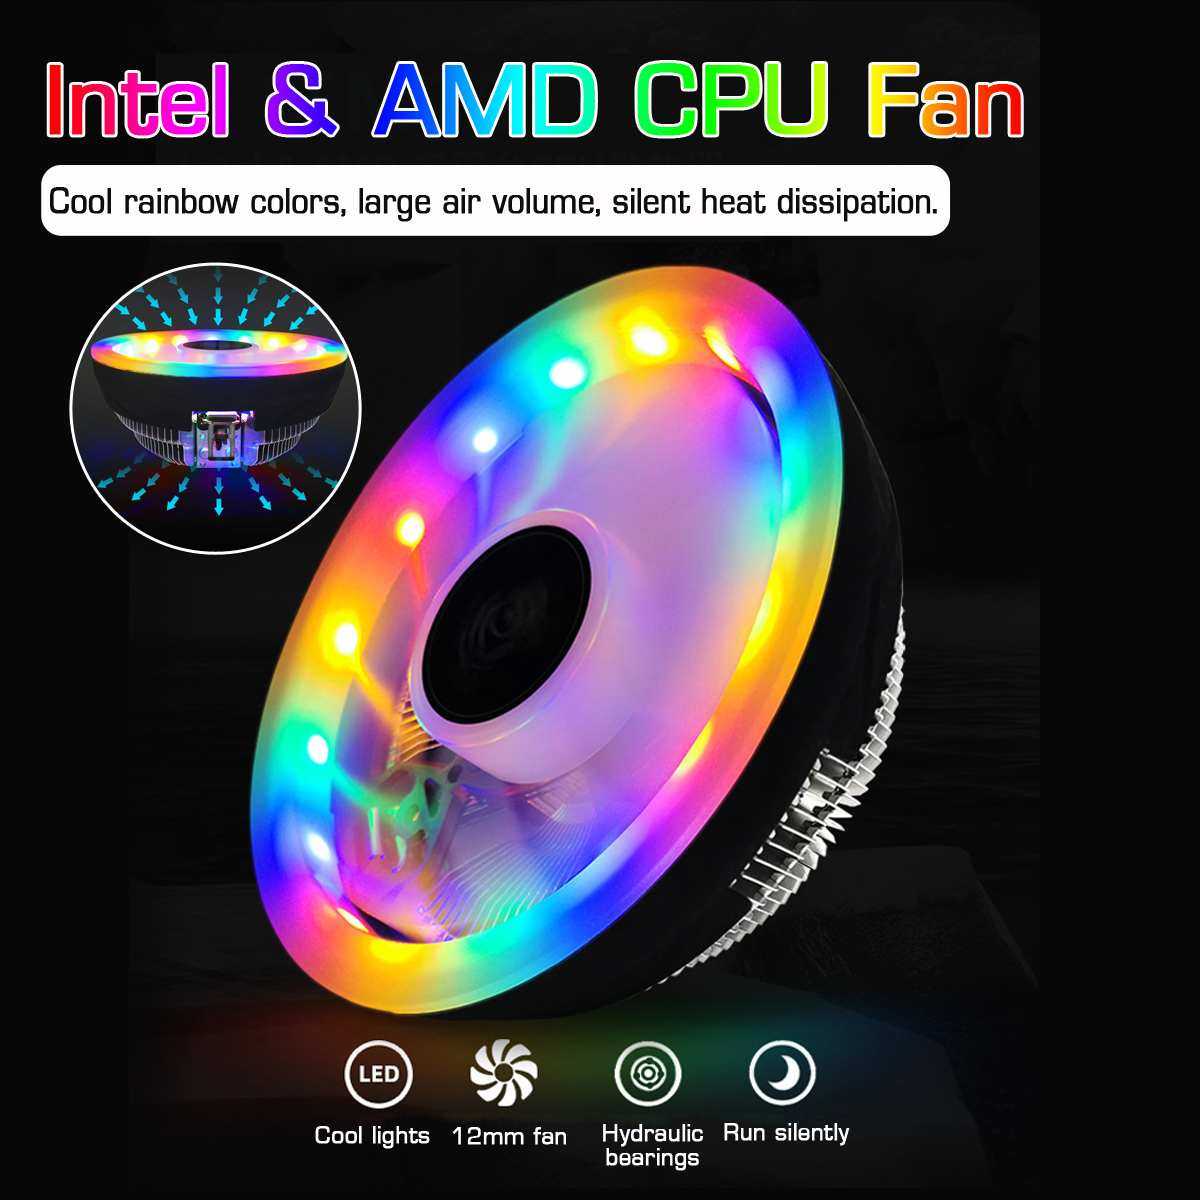 High Quality Durable Heatsink CPU Cooler Cooling Radiator Fan 3 Pin RGB CPU Cooler for CPUs with Power Less than 80W image